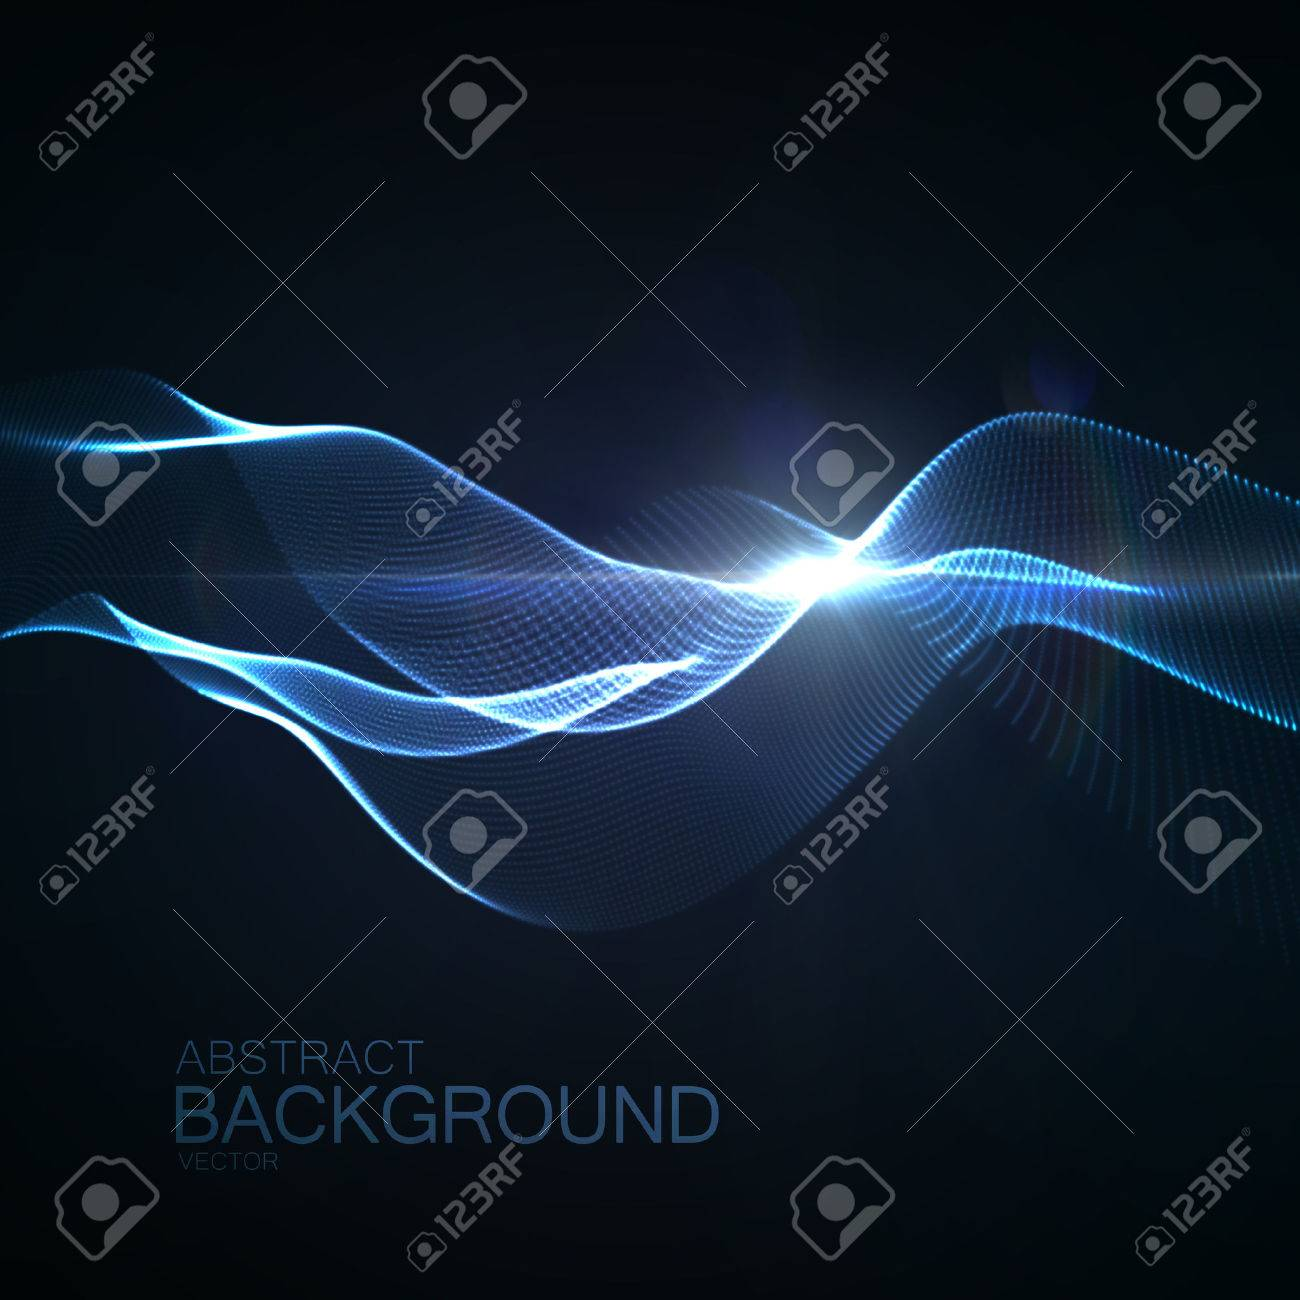 3D Illuminated Abstract Digital Wave Of Glowing Particles And Flare Lens Light Effect Futuristic Vector